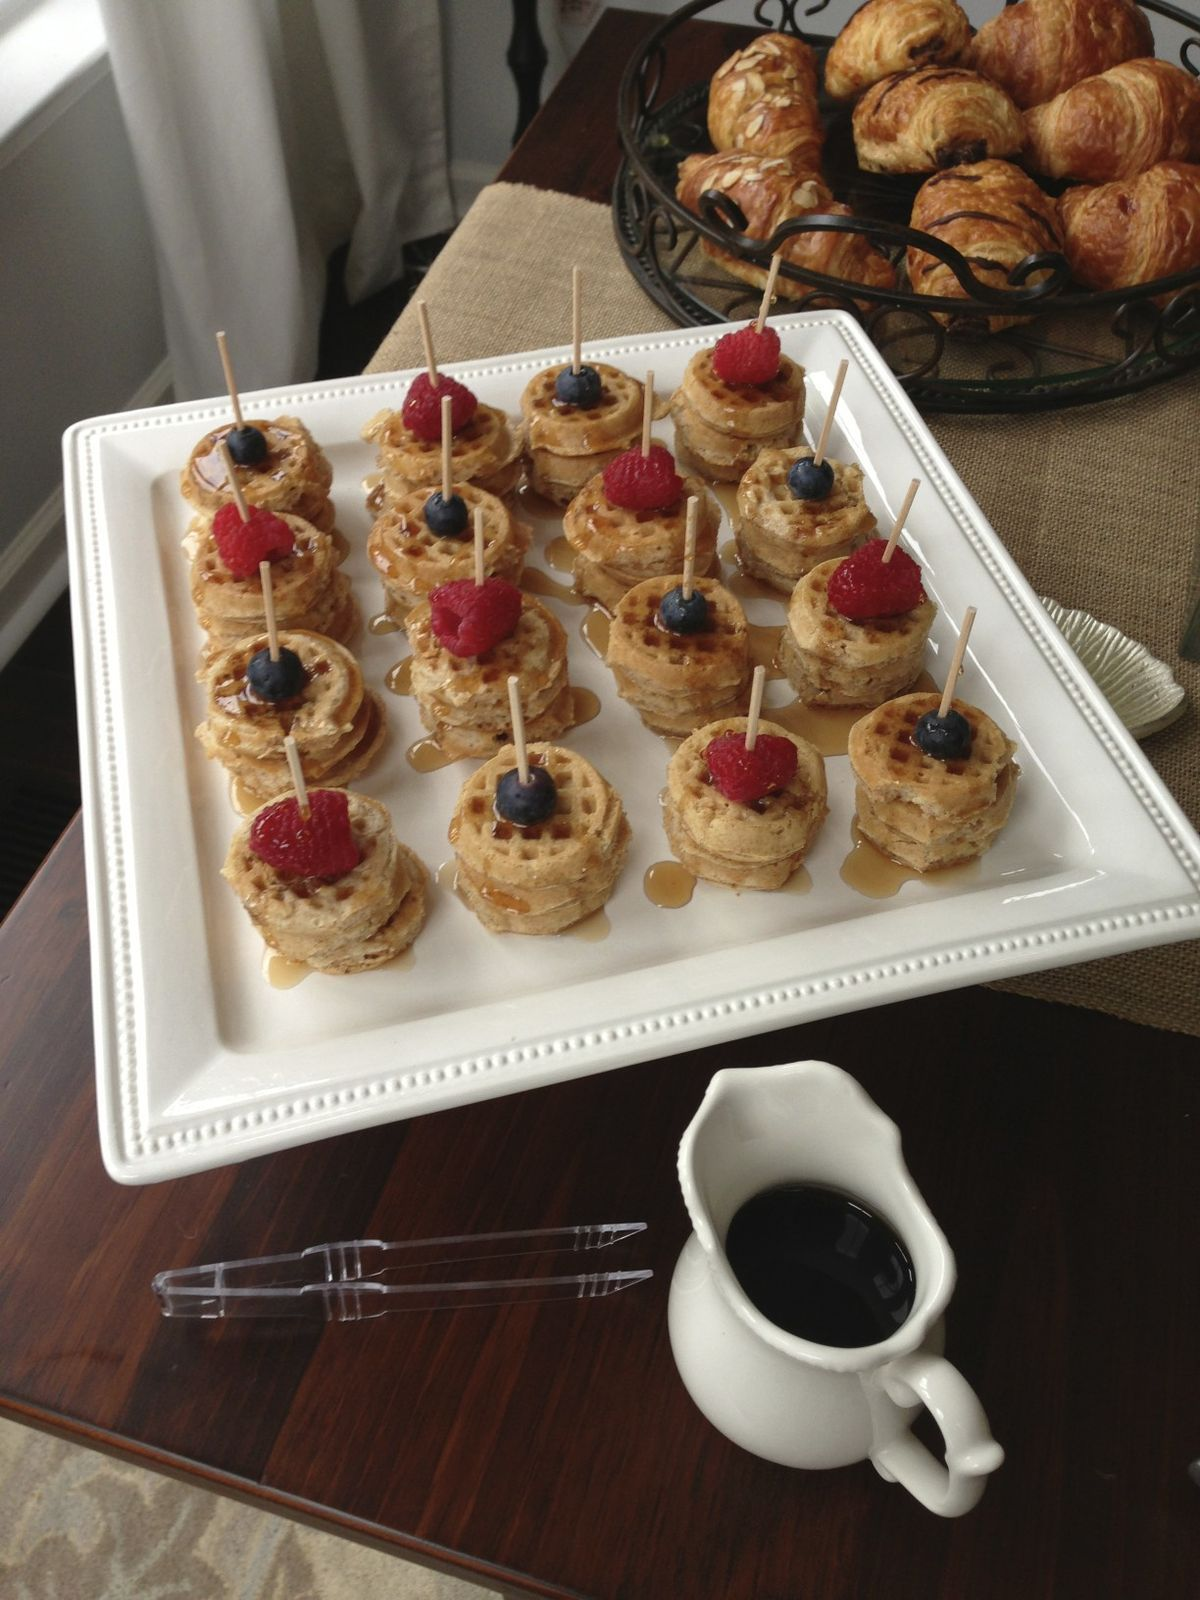 ideas for bridal shower brunch food%0A Wendy u    s Darling Waffles  Frozen mini waffles and berries with syrup  a  beautiful breakfast platter done in ten min